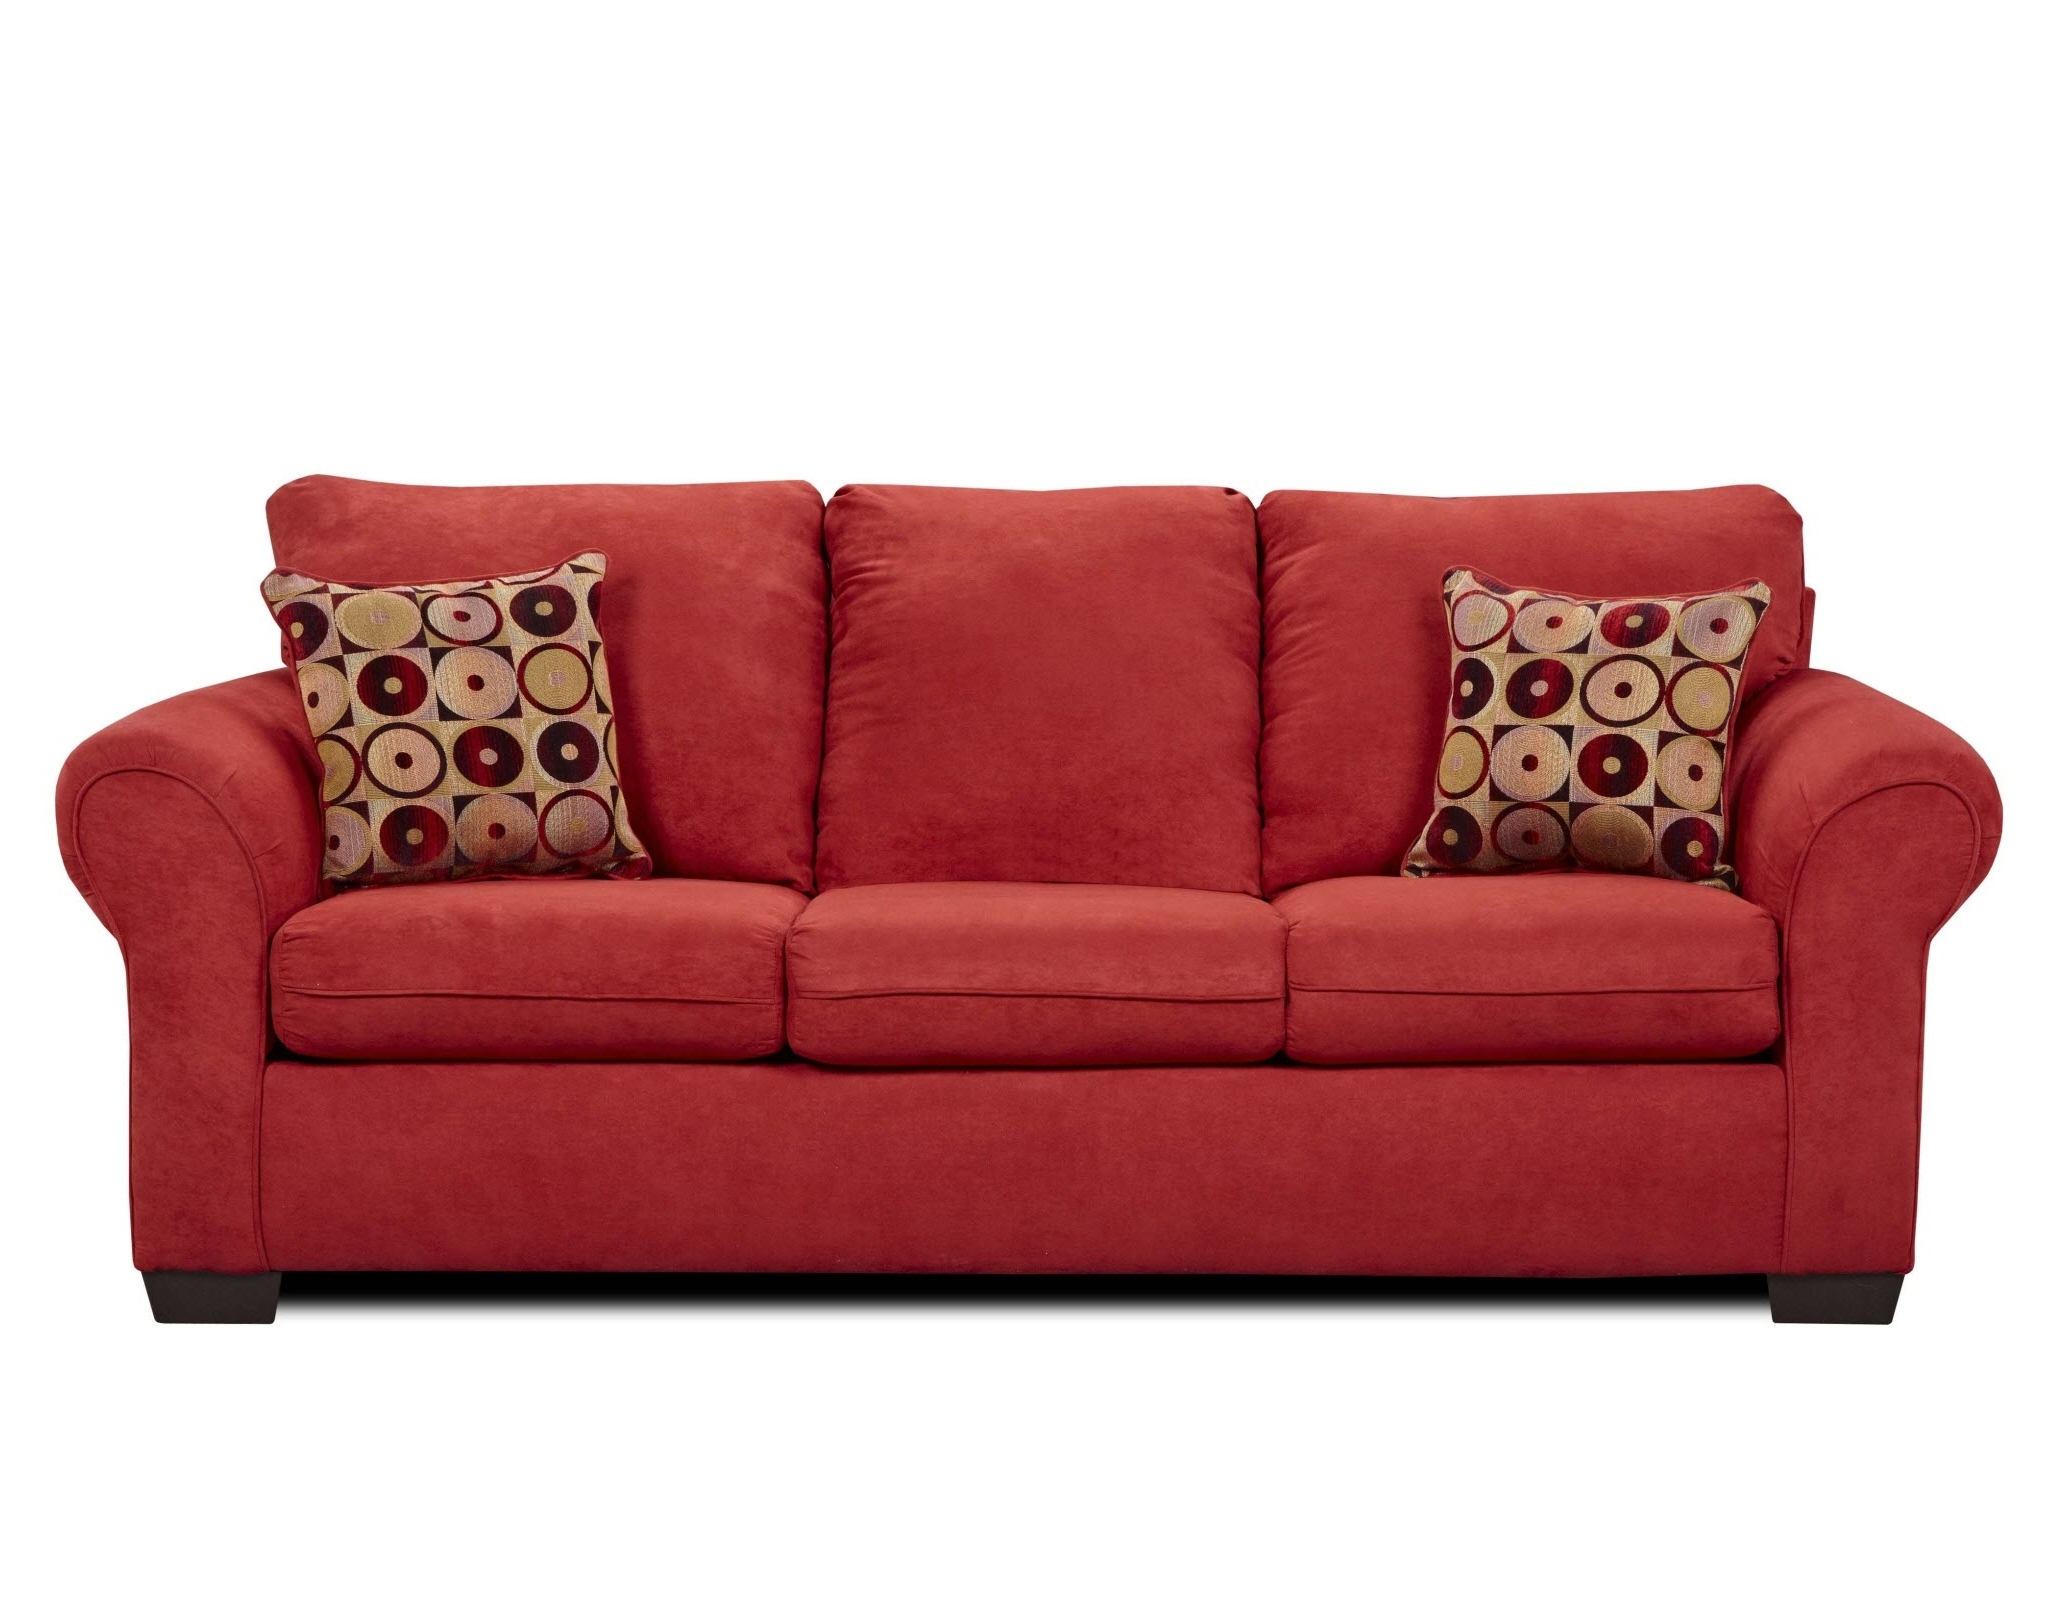 Red Sofa Chairs Pertaining To Widely Used Fabric Red Sofa Sets Attached Back (View 13 of 20)